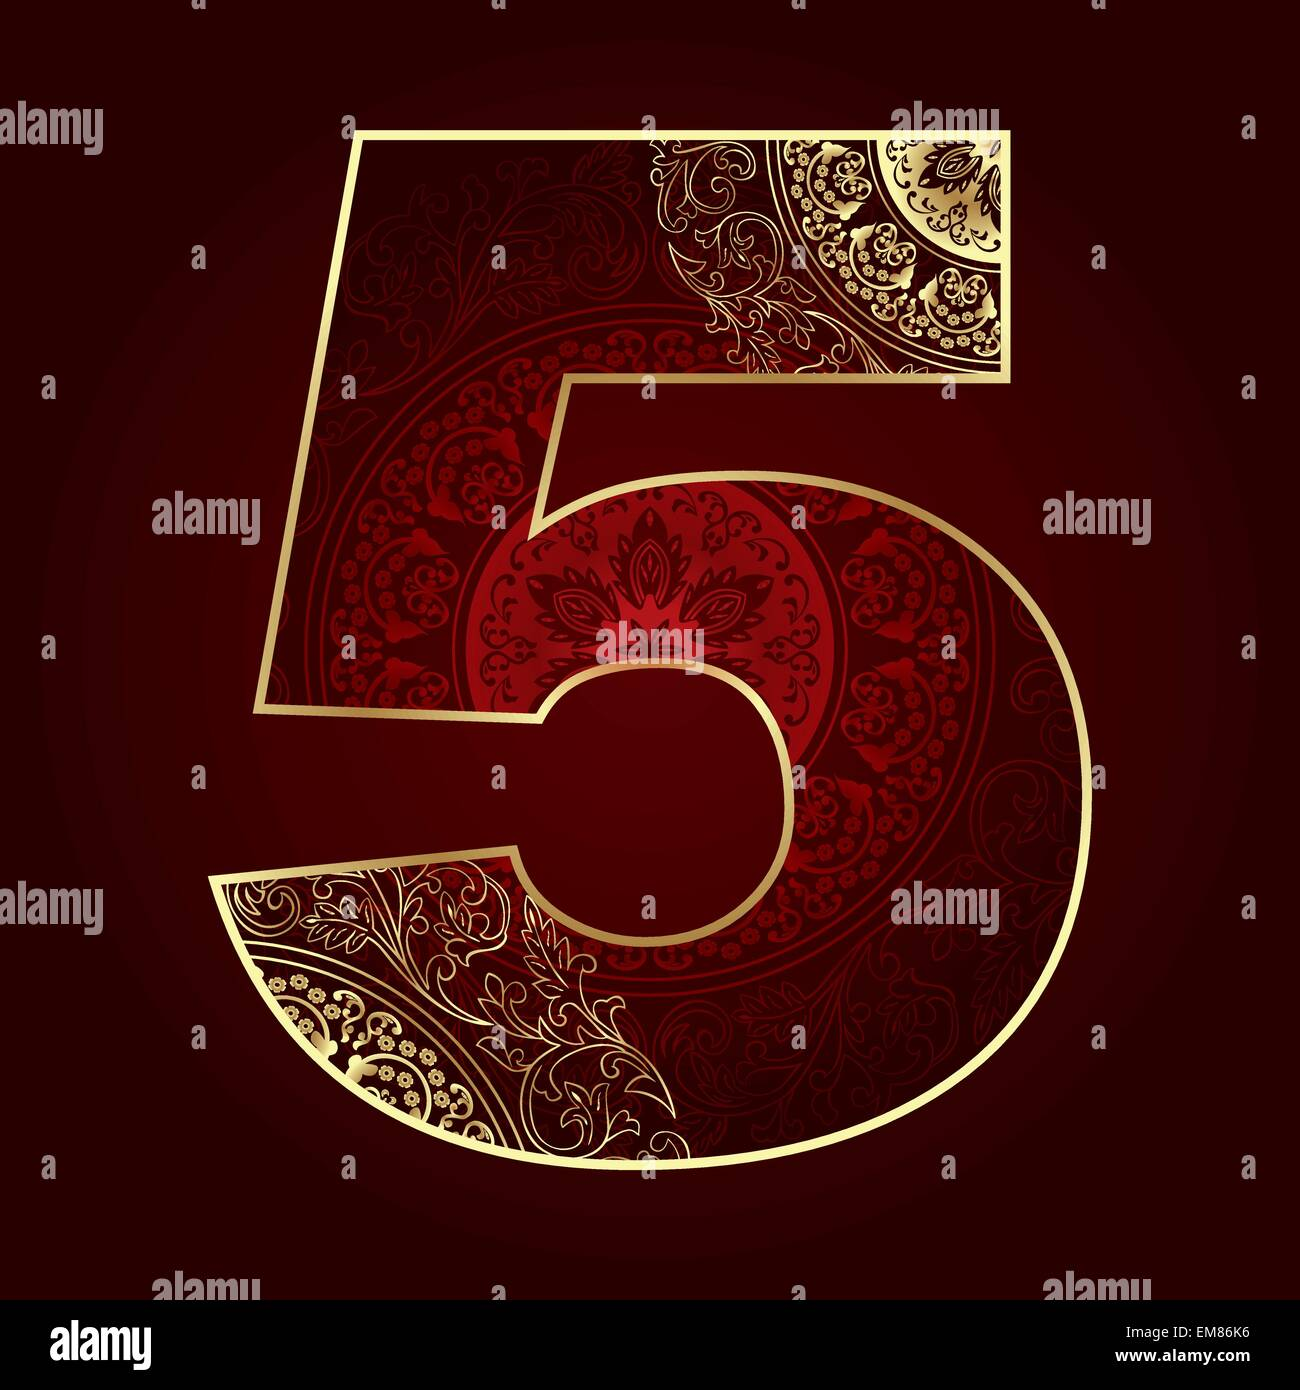 Vintage number 5 with floral swirls - Stock Image